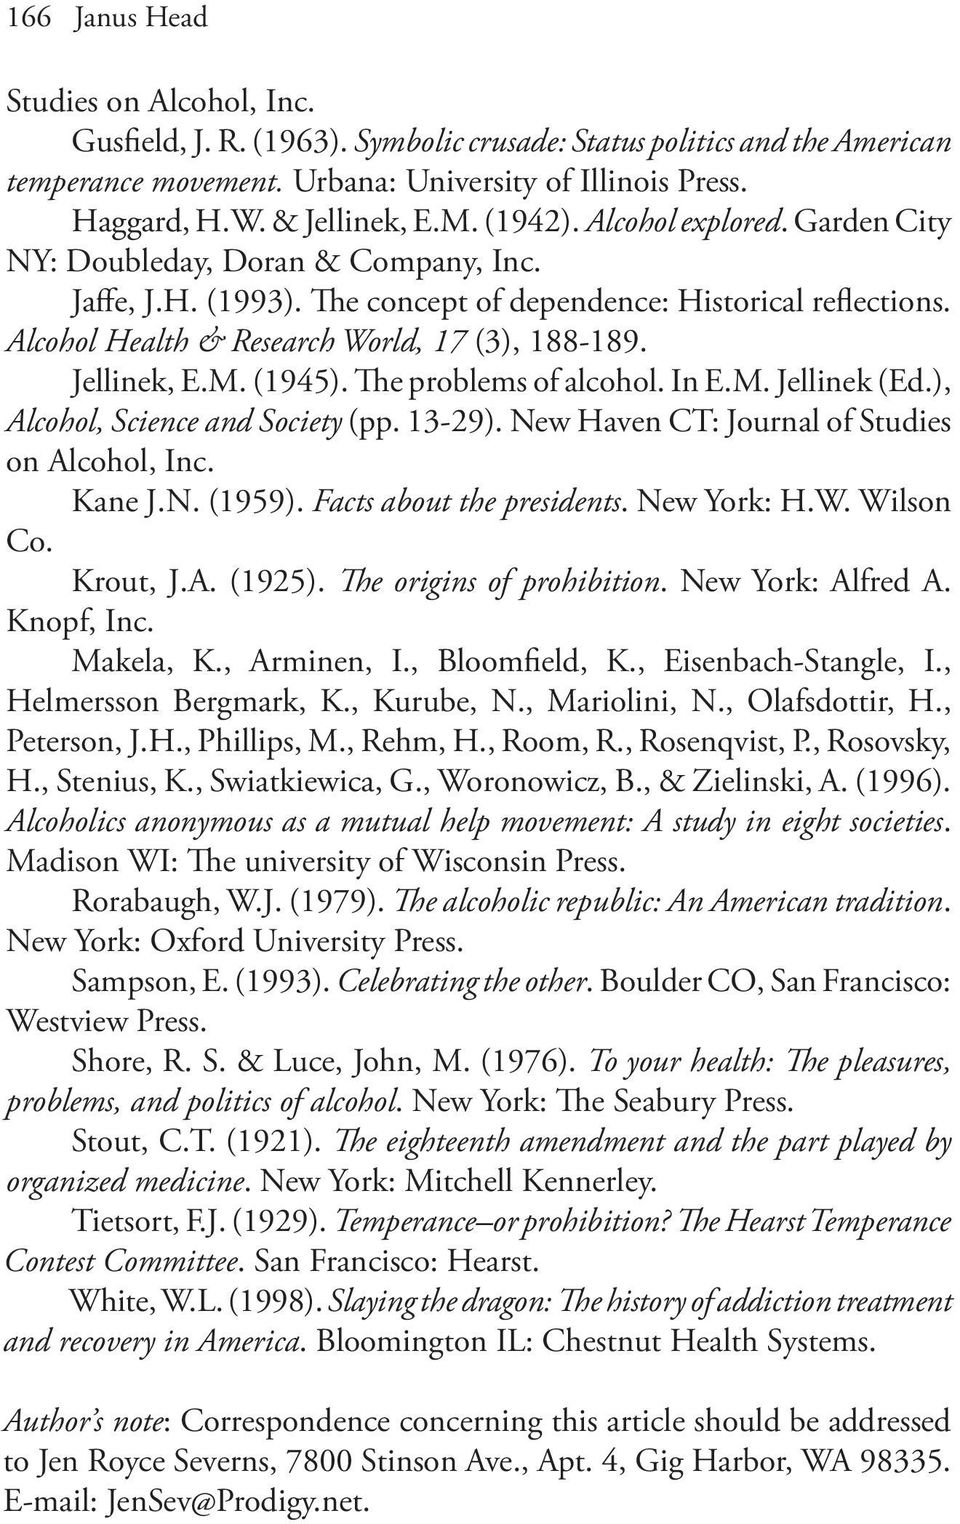 Alcohol Health & Research World, 17 (3), 188-189. Jellinek, E.M. (1945). The problems of alcohol. In E.M. Jellinek (Ed.), Alcohol, Science and Society (pp. 13-29).